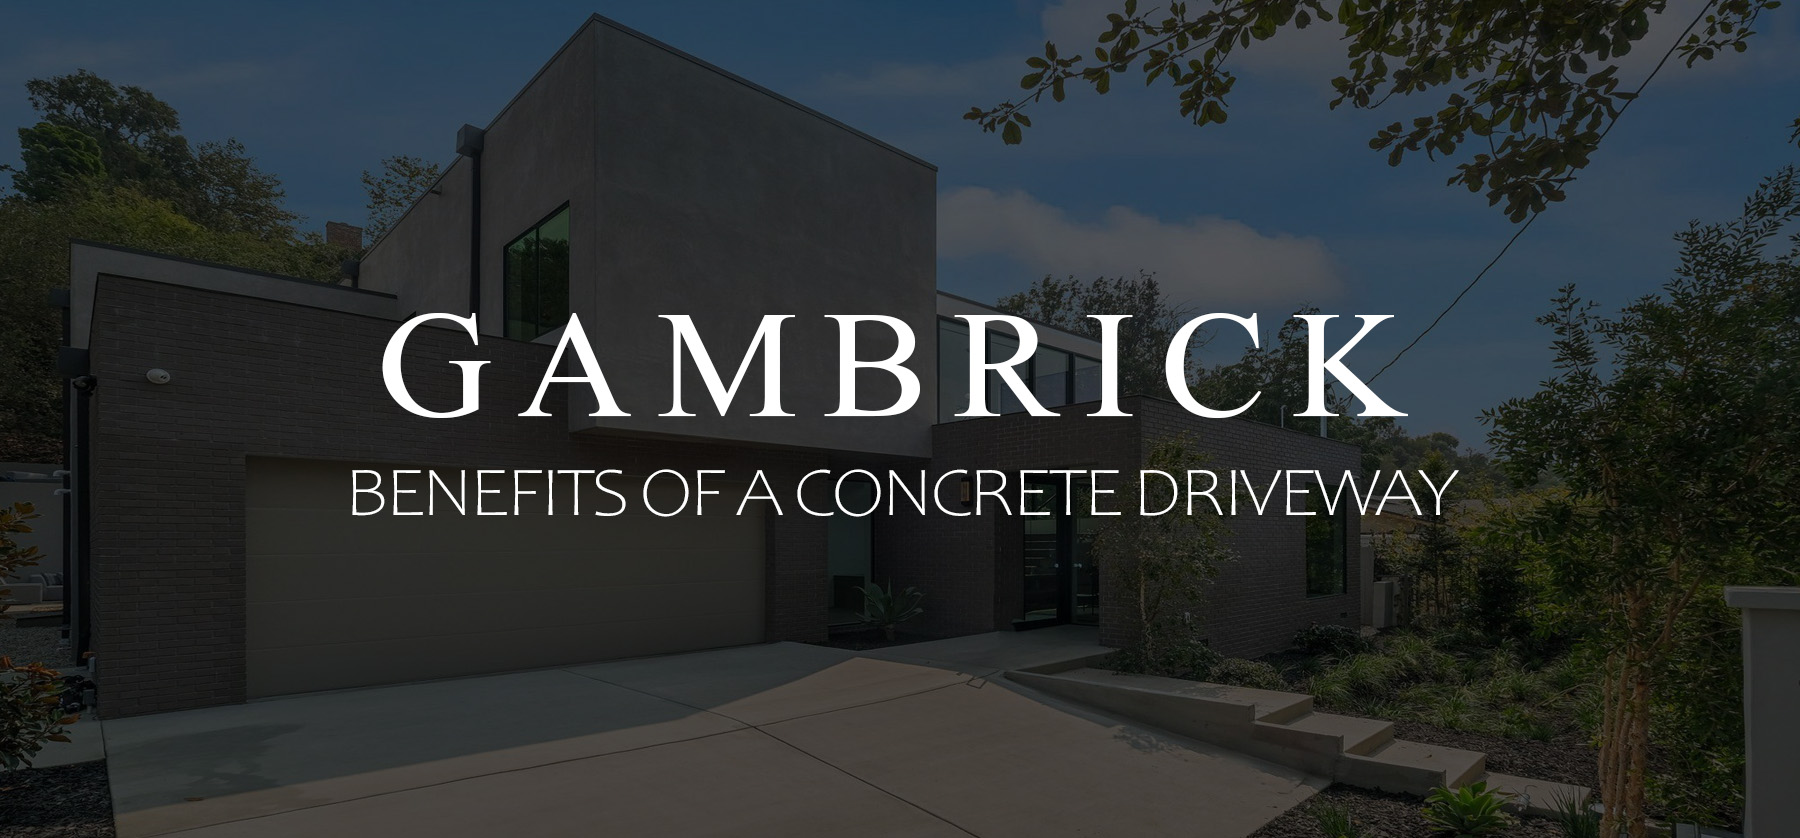 Benefits of a concrete driveway Banner 1